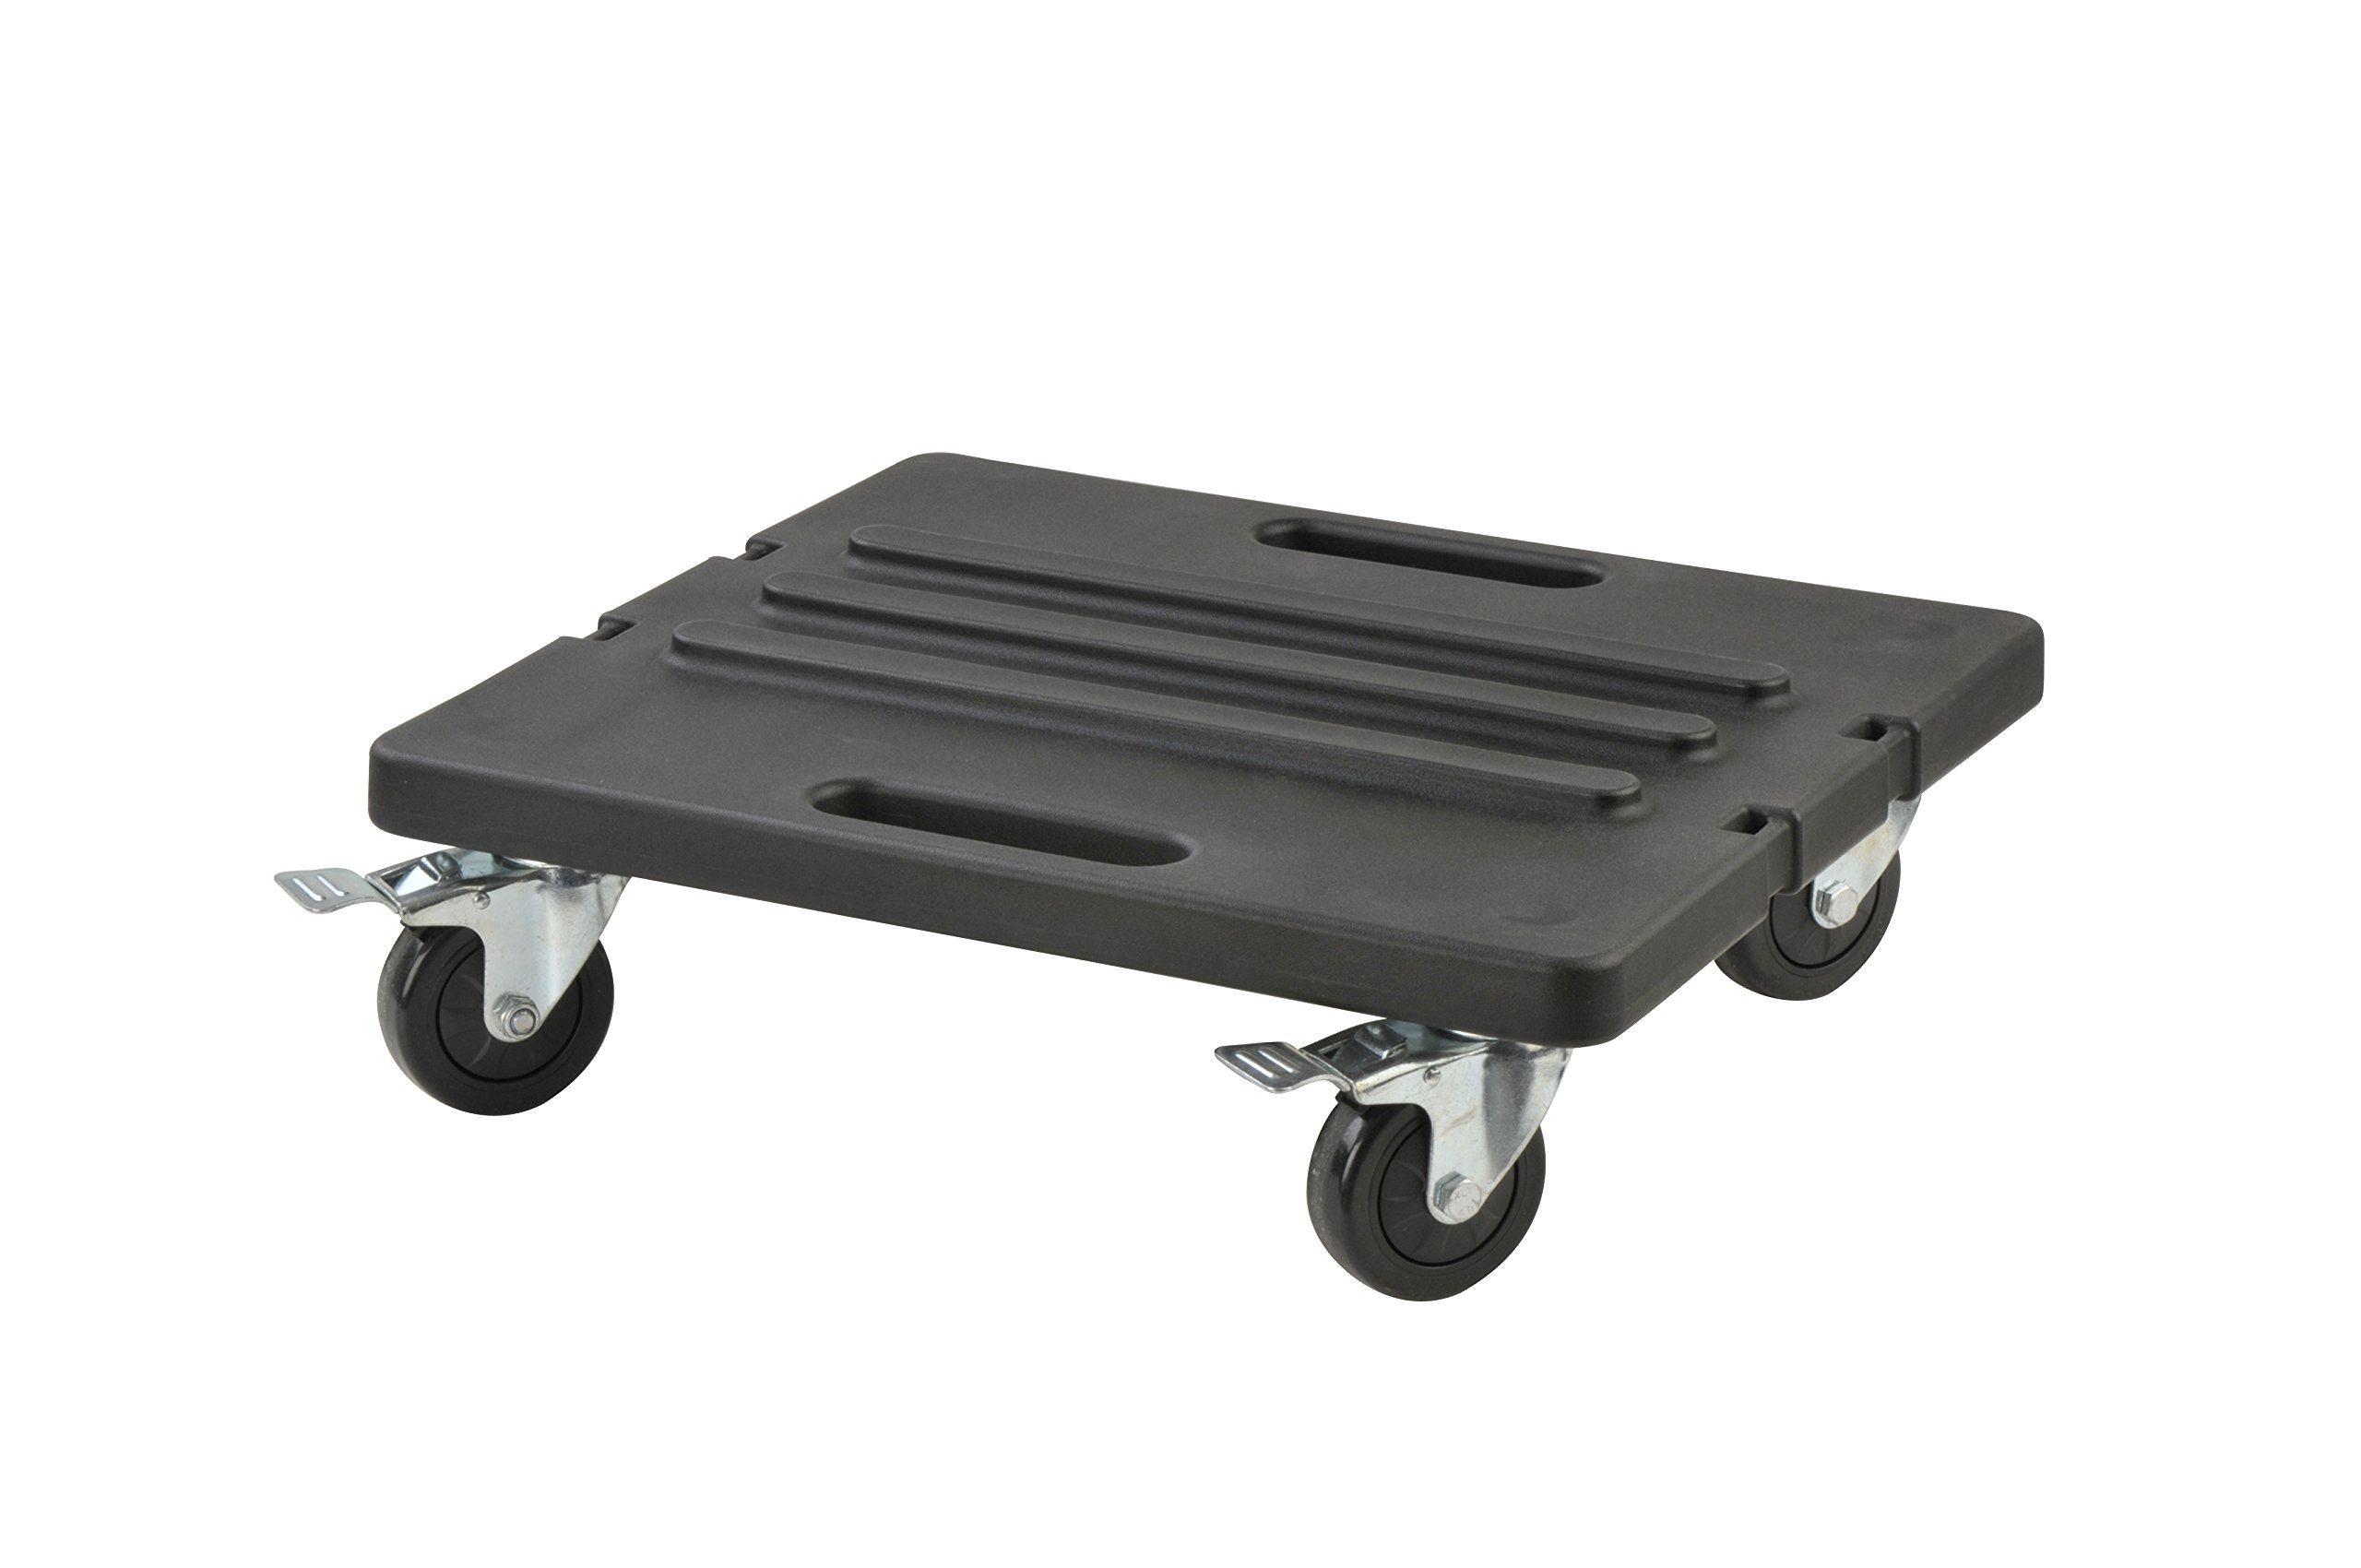 SKB 1SKB-RCB Roto/Shallow Rack Series Caster Platform with Four 3-Inch Locking Casters